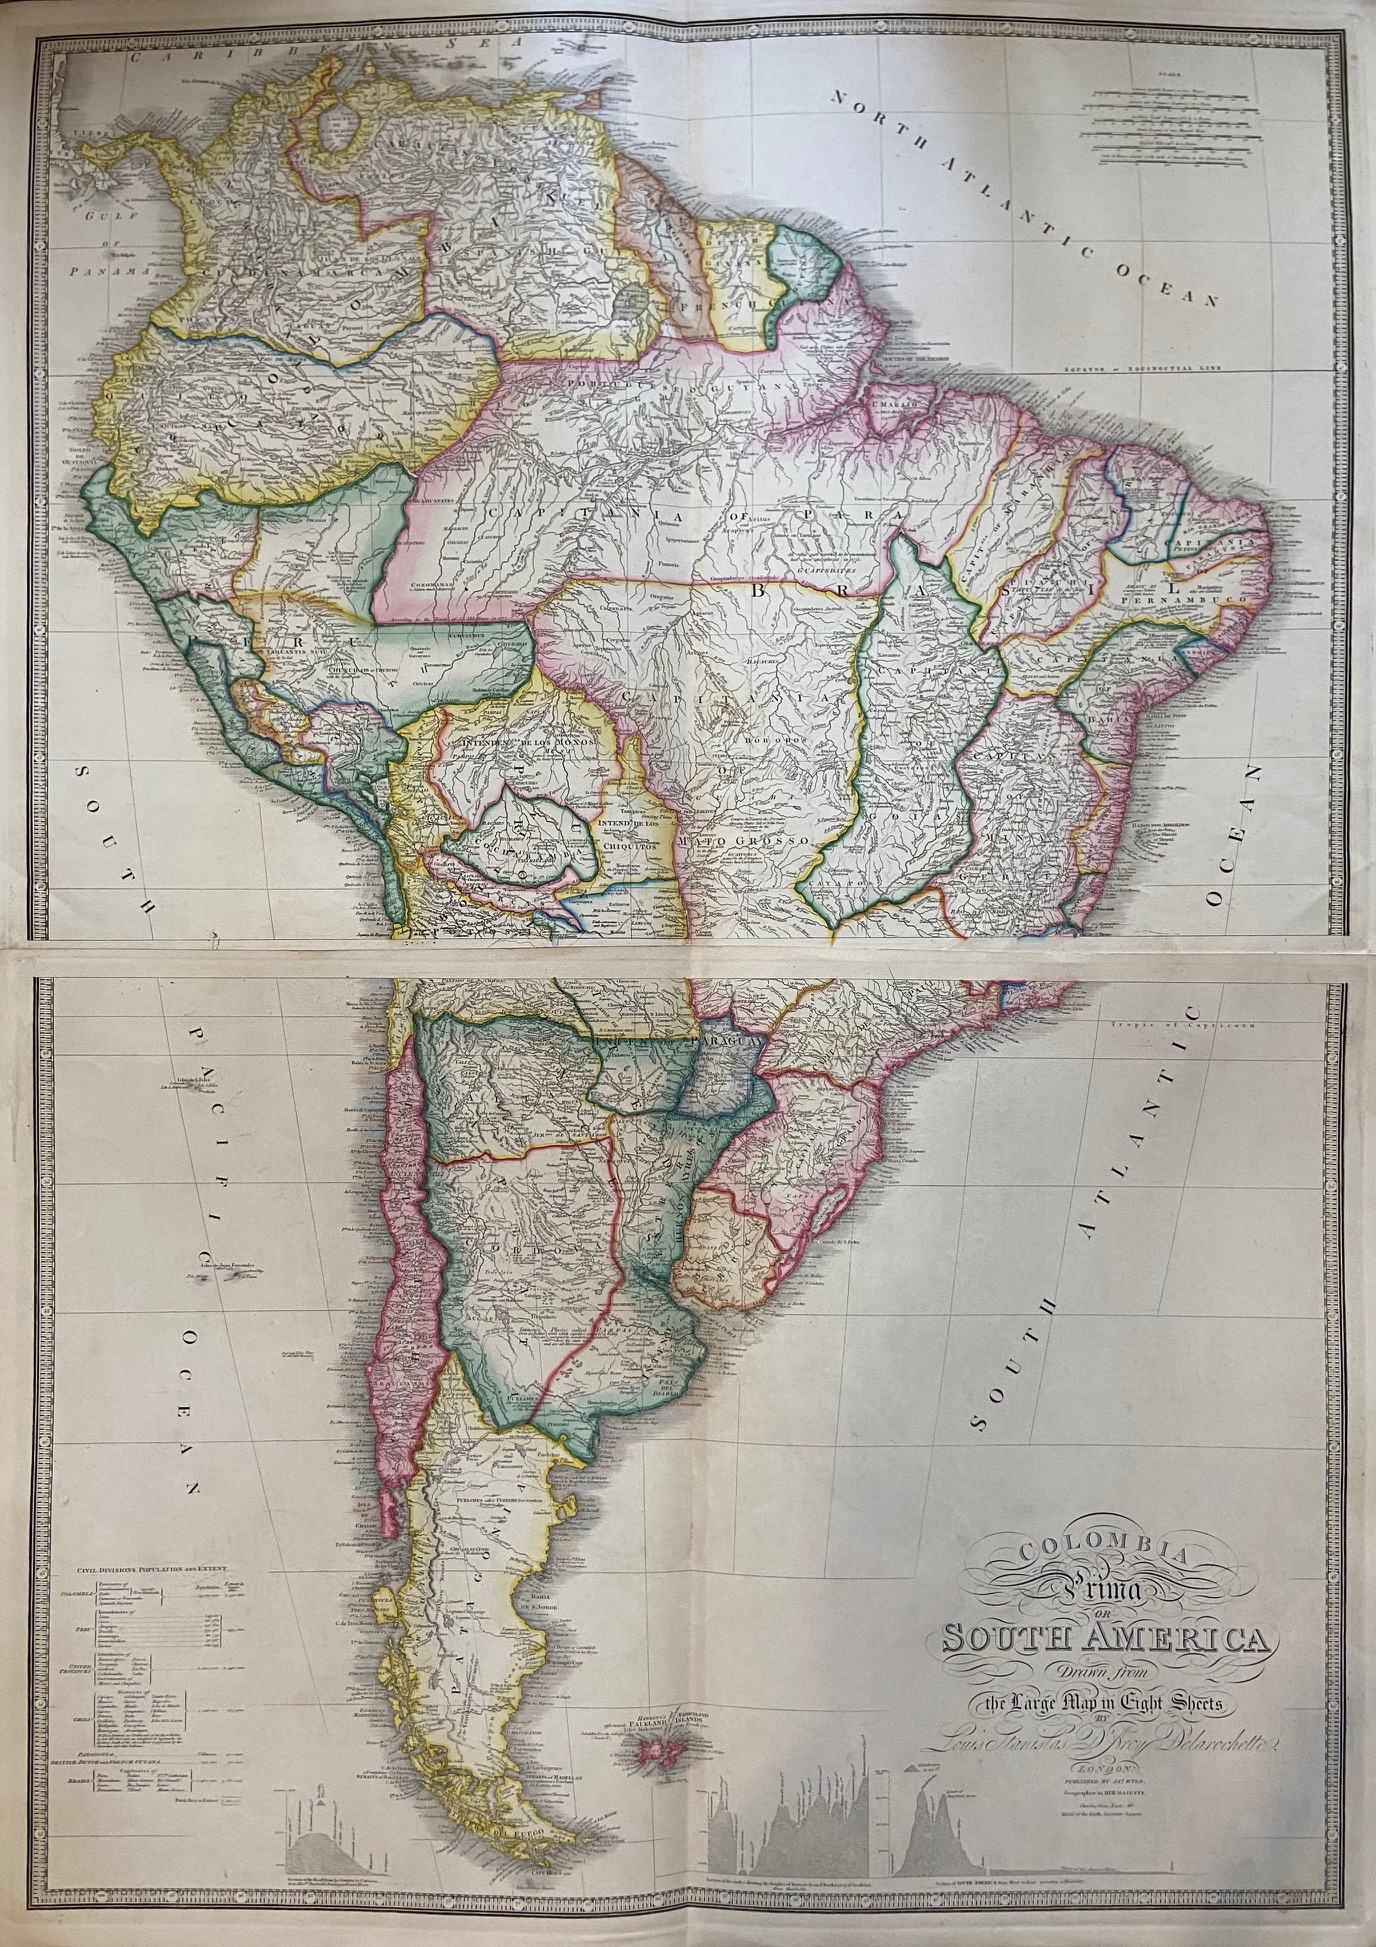 Colombia Prima or South America drawn from: WYLD, James